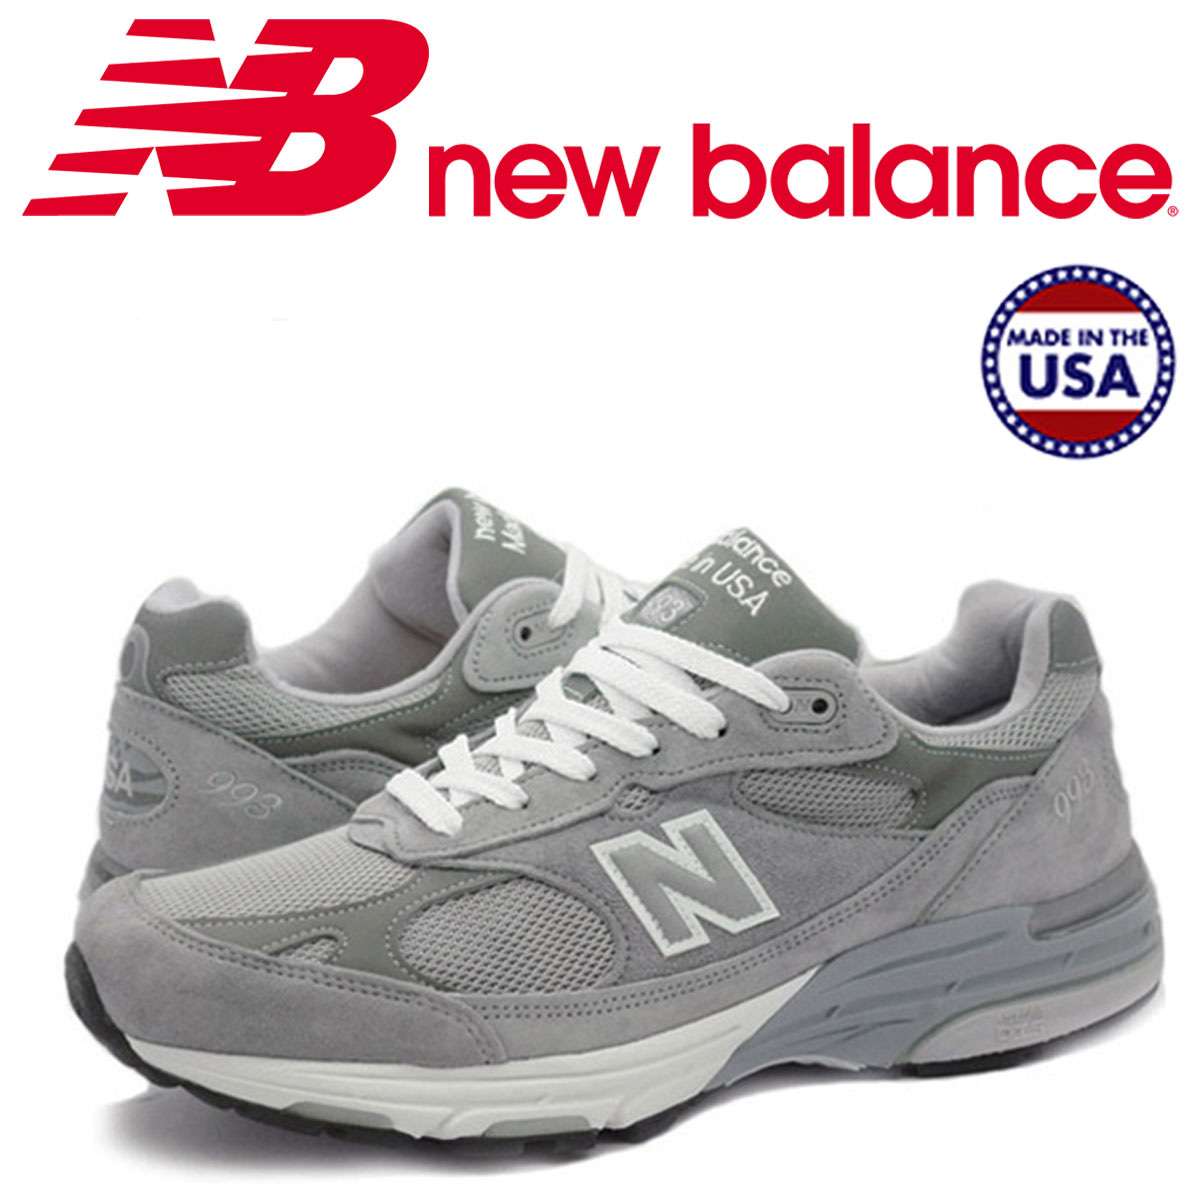 official photos 6ce2f 273ee new balance MR993GL 993 men's New Balance sneakers D Wise MADE IN USA gray